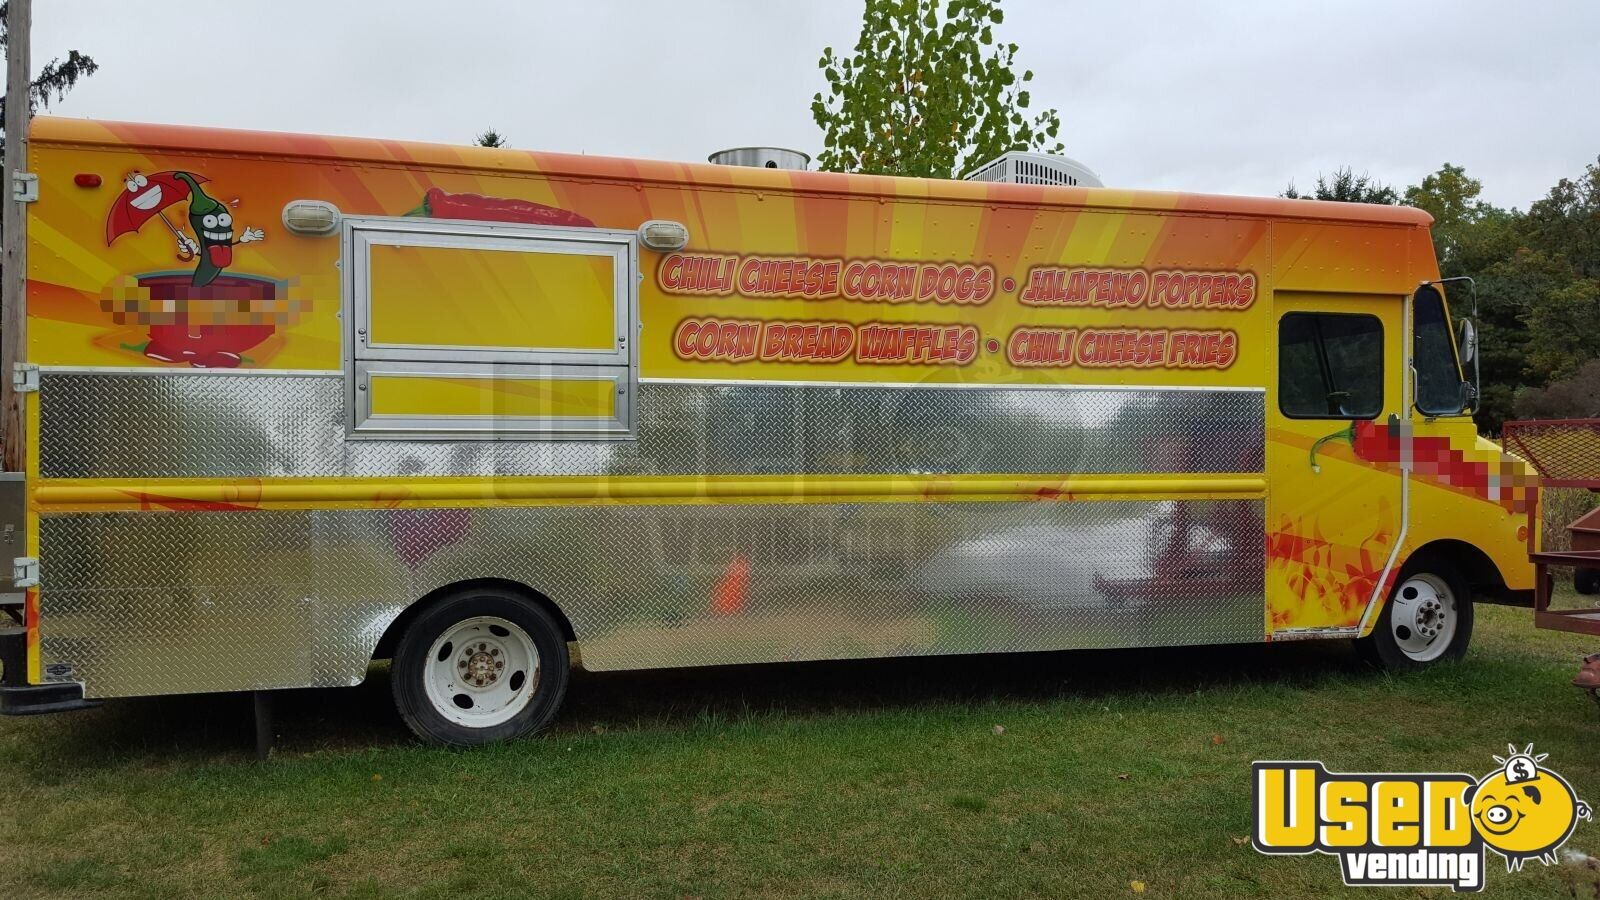 1979 Chevy P 30 All-purpose Food Truck Air Conditioning Michigan Diesel Engine for Sale - 2